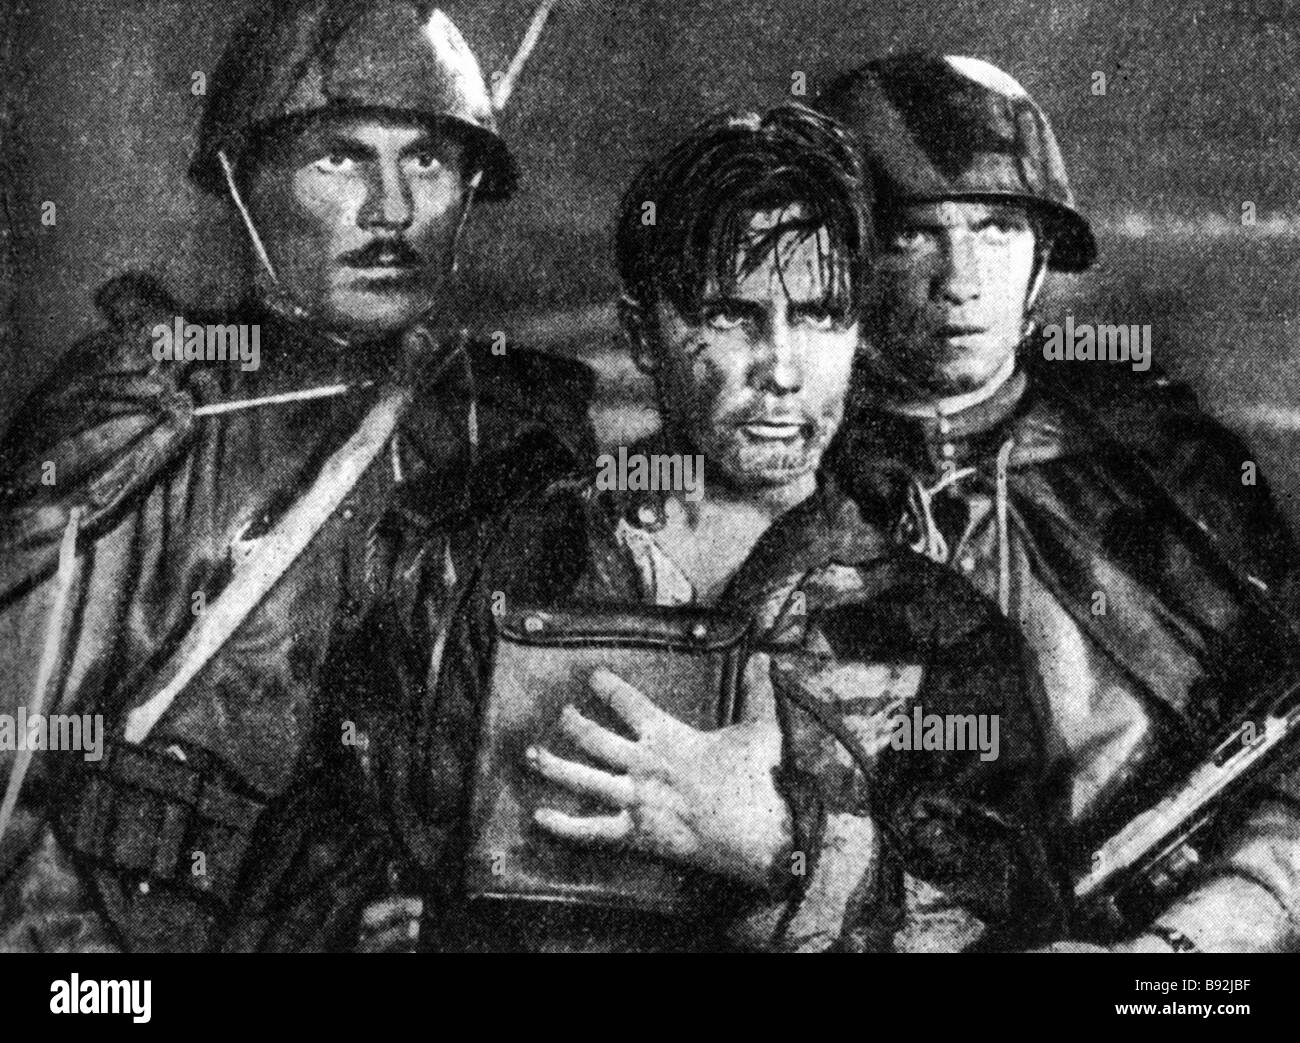 A still from the film The Star after Emmanuel Kazakevich s novel of the same name 1949 Alexander Ivanov director - Stock Image